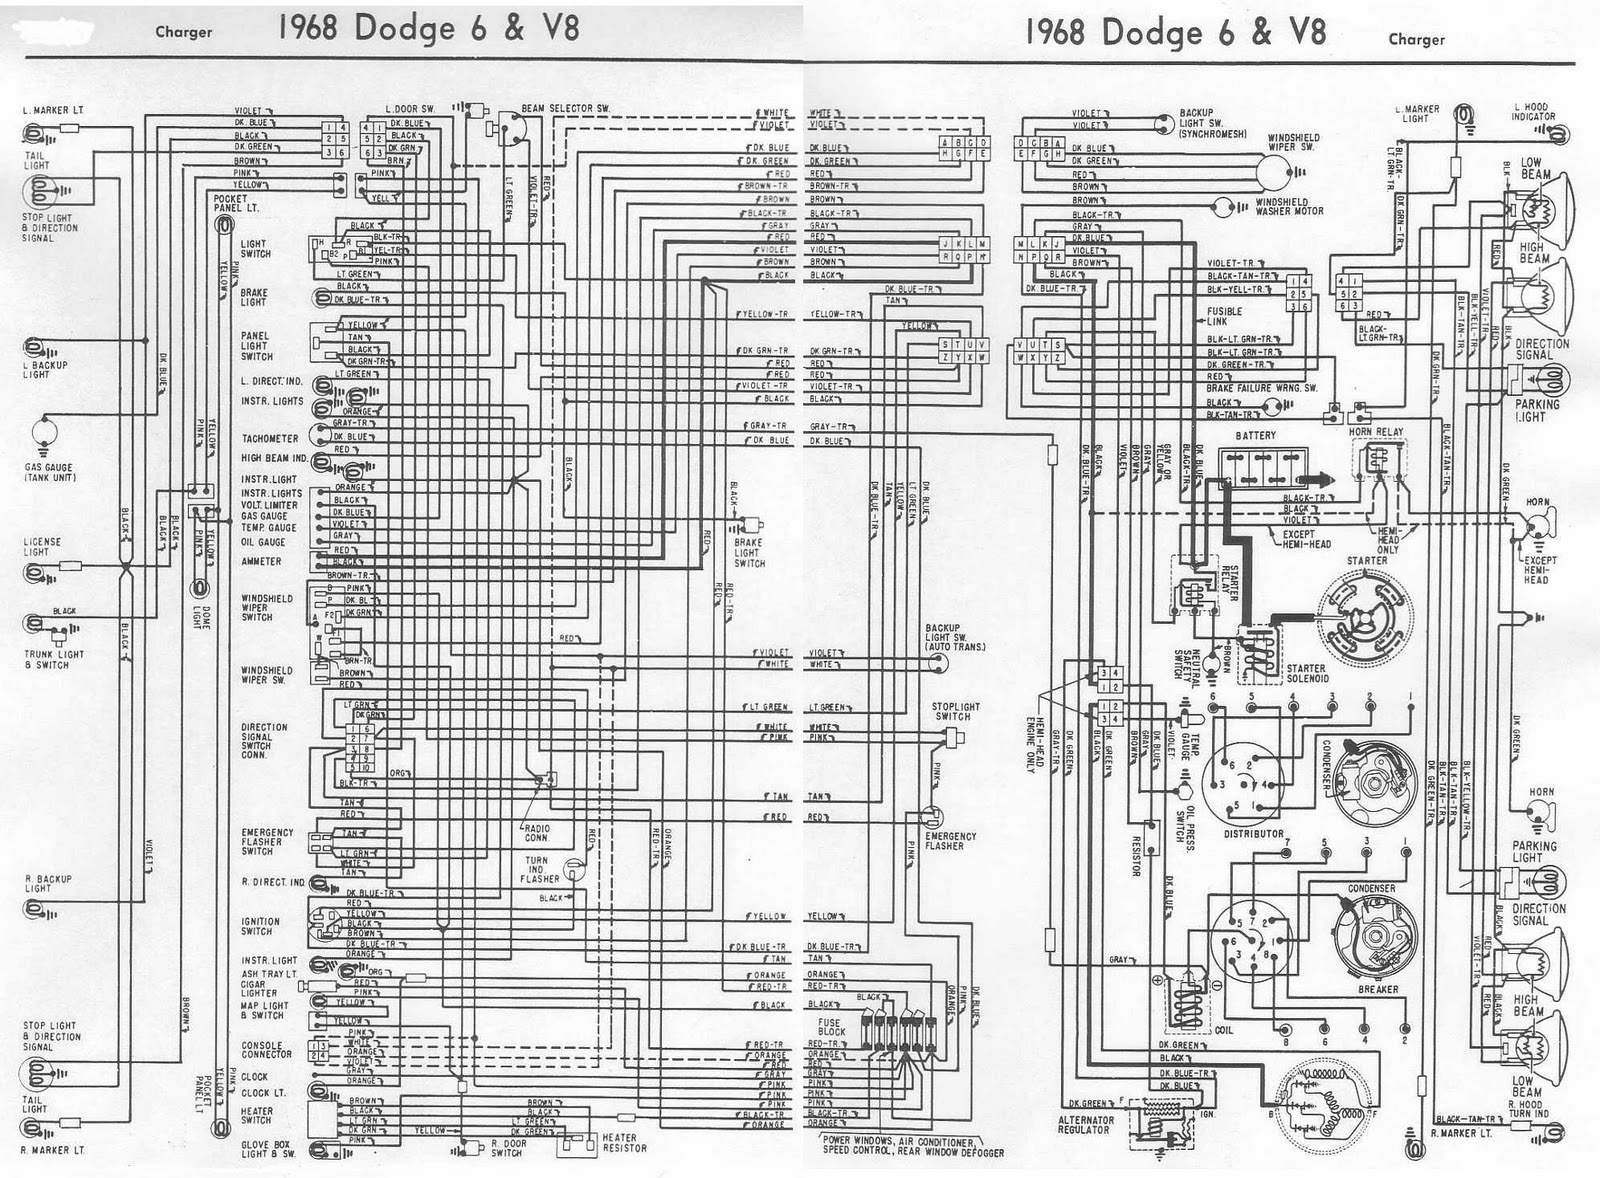 Dodge+Charger+1968+6+and+V8+Complete+Electrical+Wiring+Diagram dodge charger 1968 6 and v8 complete electrical wiring diagram 1967 dodge charger wiring diagram at gsmx.co